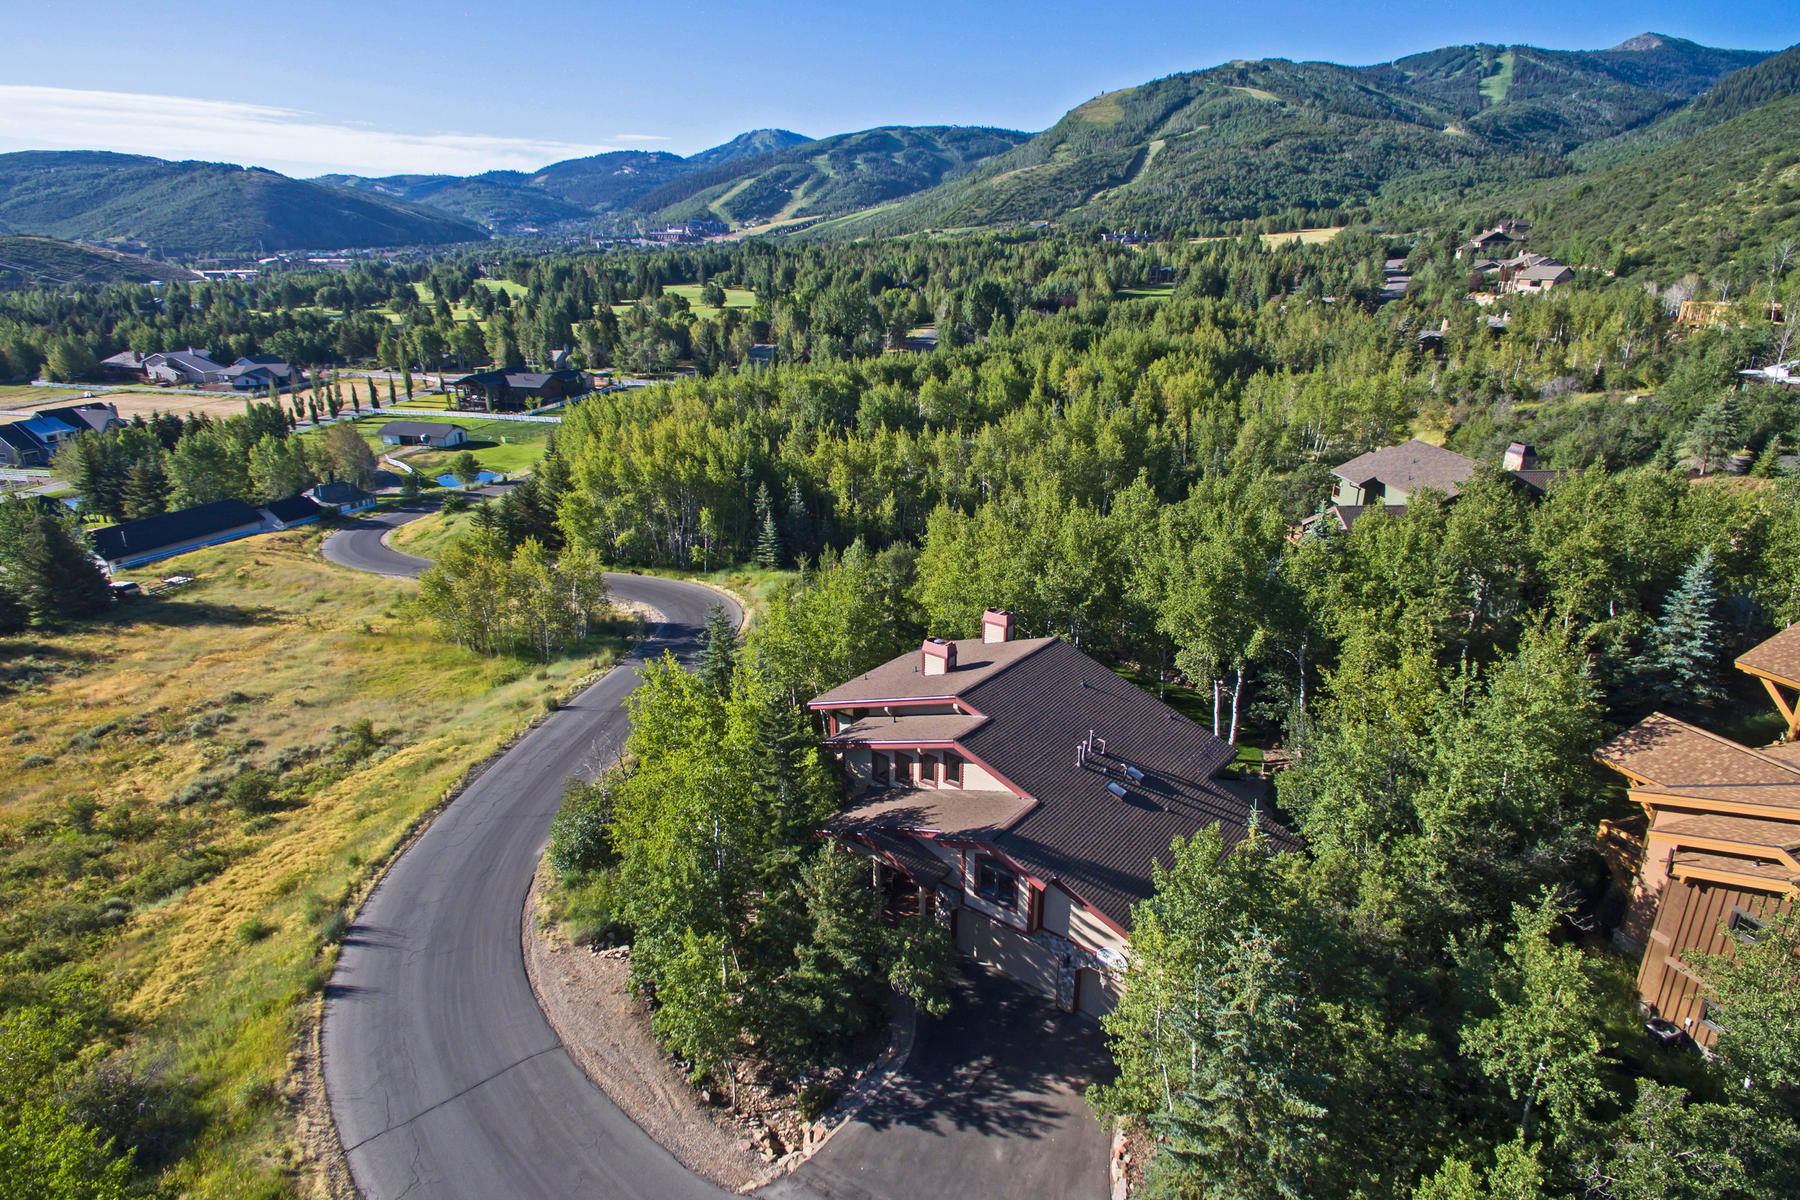 Casa Unifamiliar por un Venta en Resort Views and Privacy in Iron Canyon 2410 Iron Canyon Dr Park City, Utah, 84060 Estados Unidos